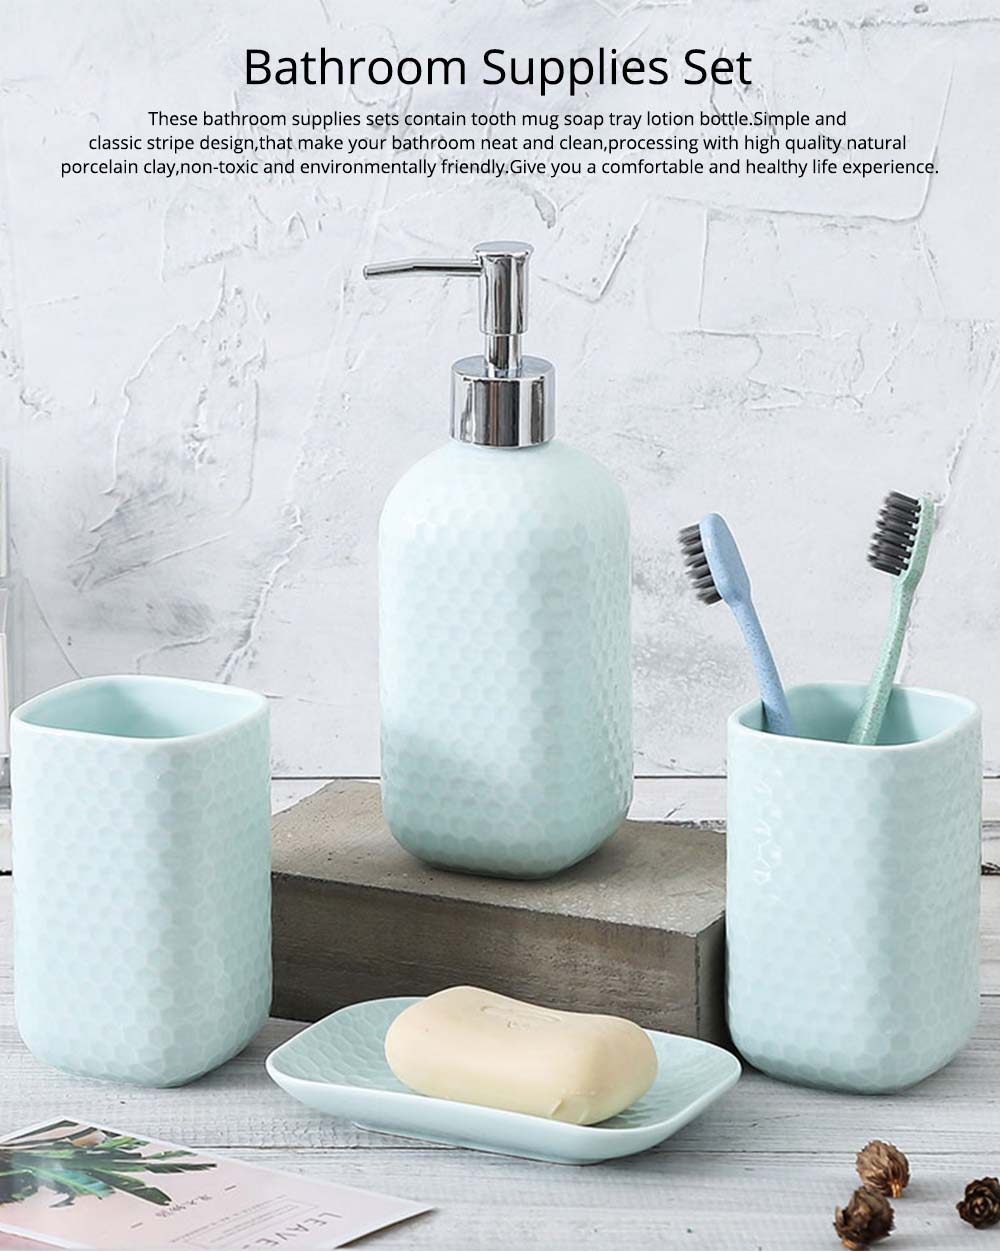 Simple Solid Color Ceramic 4 Pieces Bathroom Accessory Set Creative Fashion Design Tooth Mug Soap tray Lotion Bottle 0